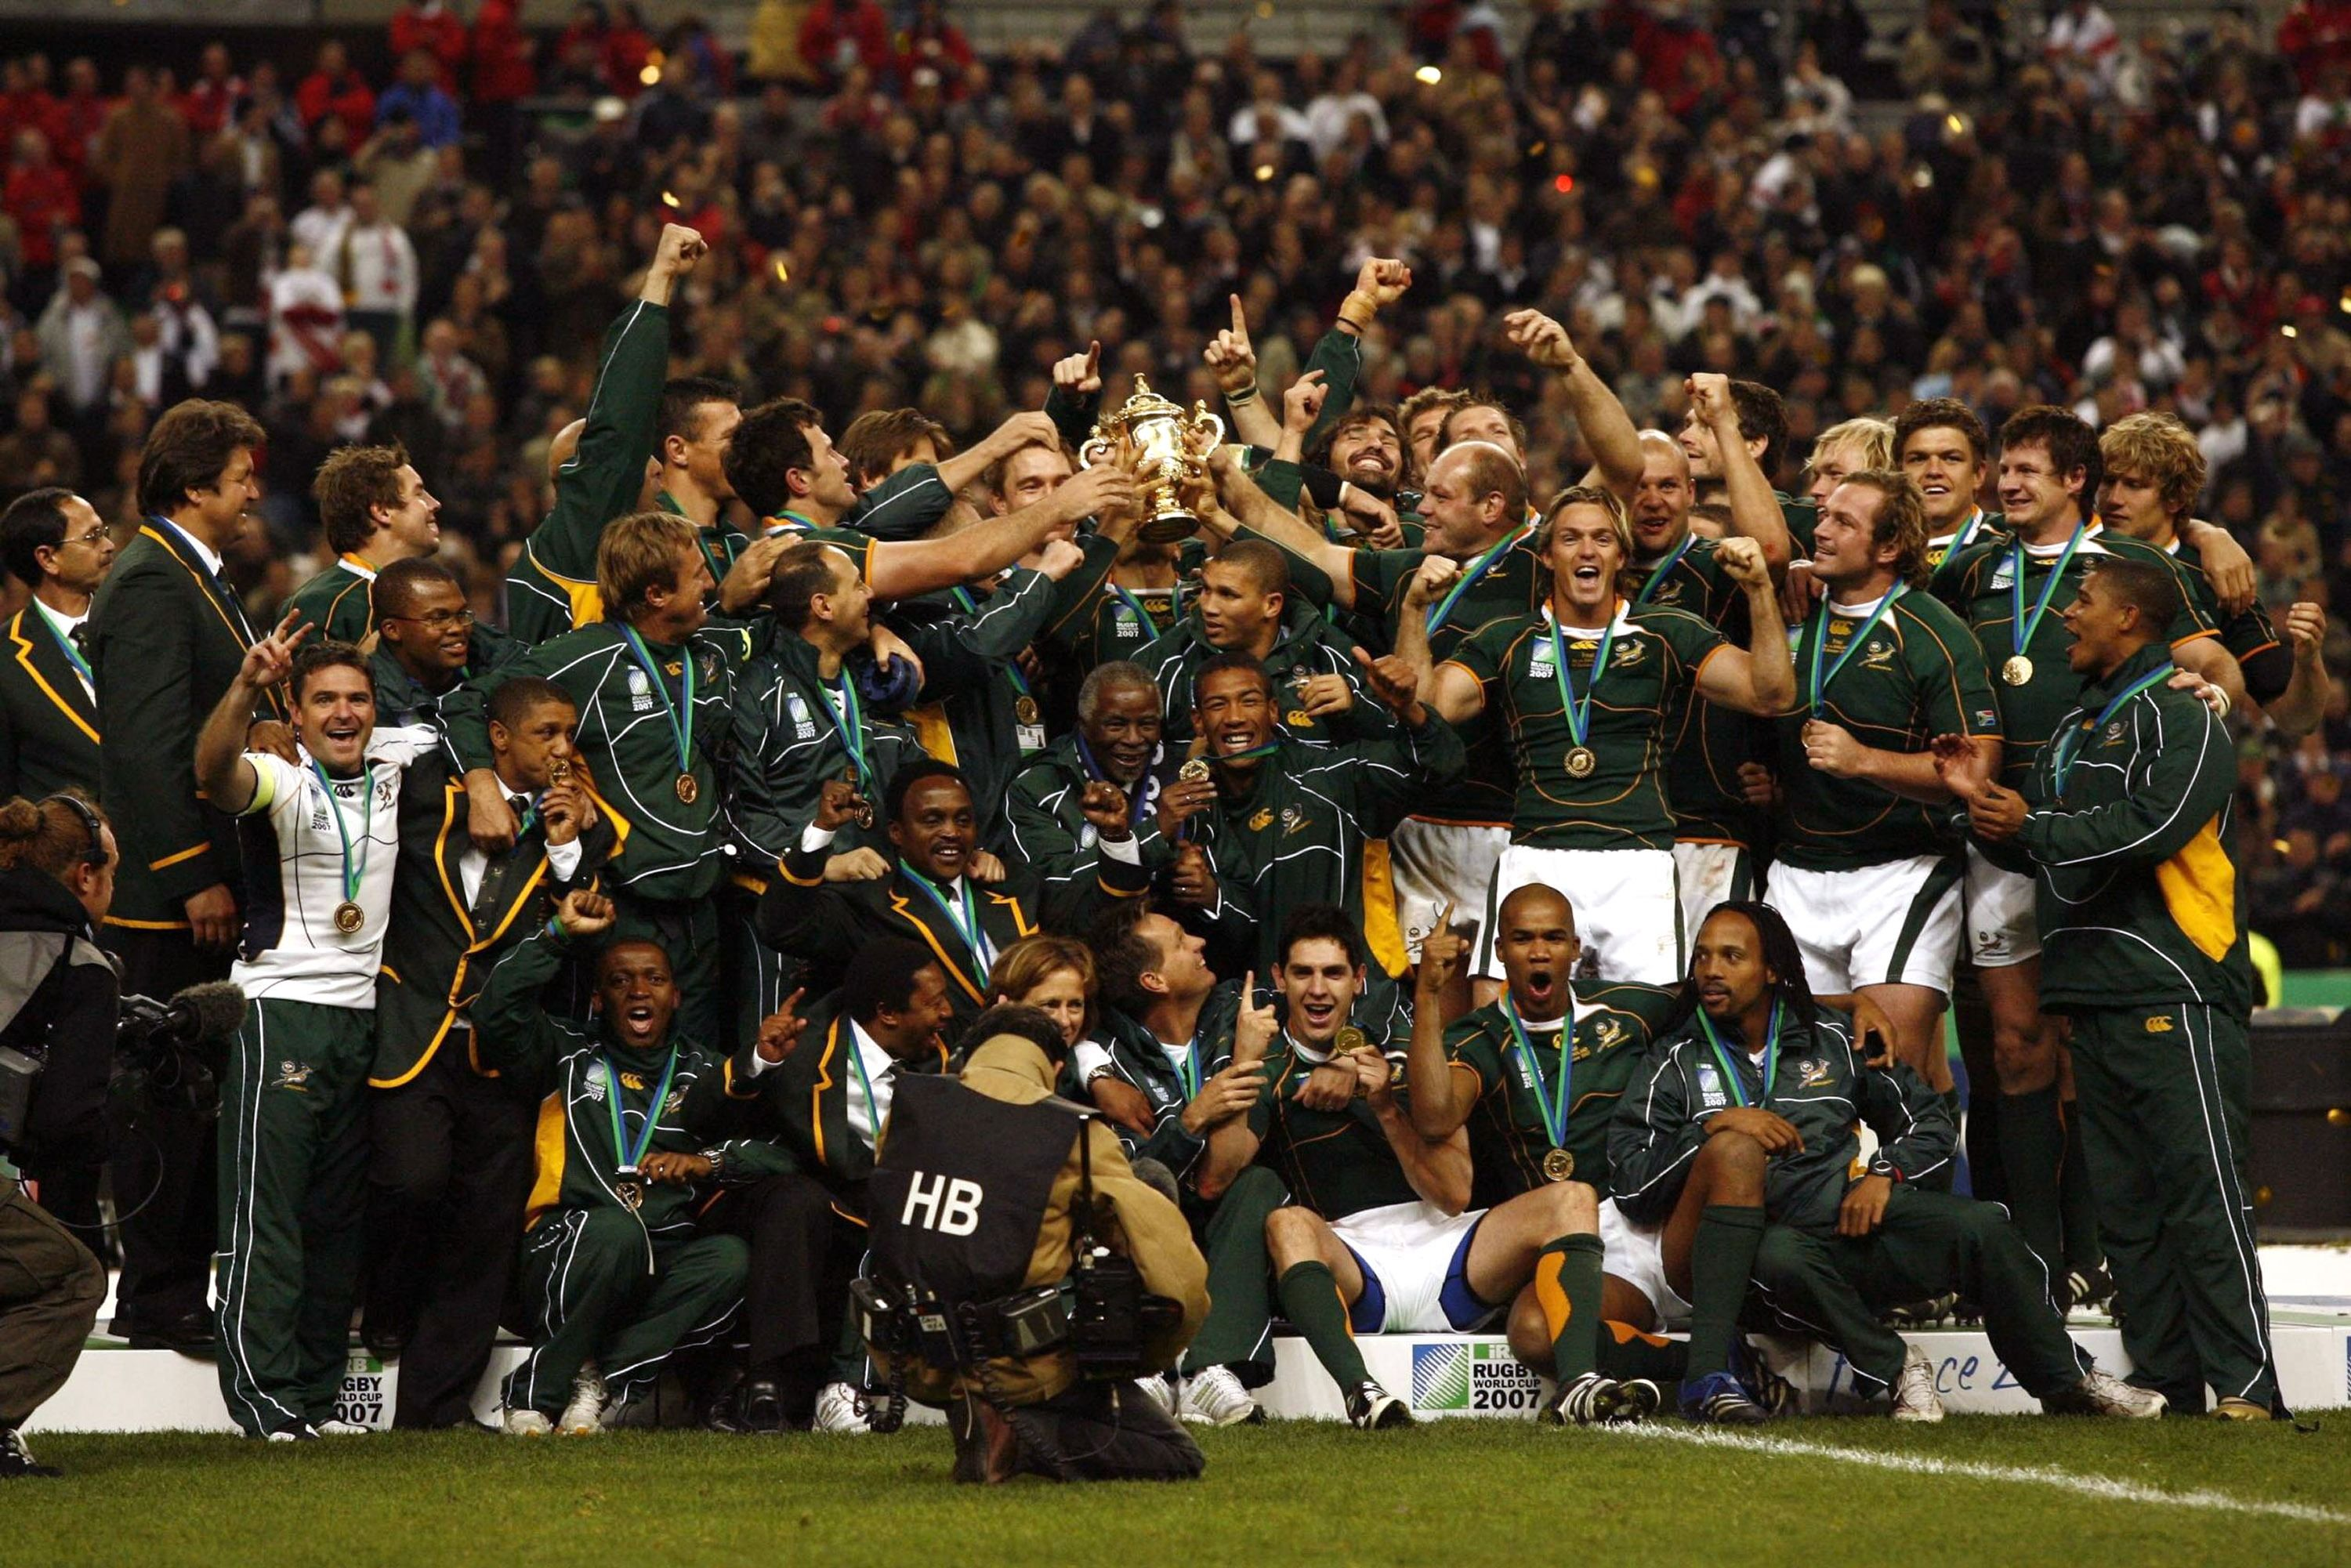 2007 Rugby World Cup Final | SOUTH AFRICA ACHIEVEMENTS ...